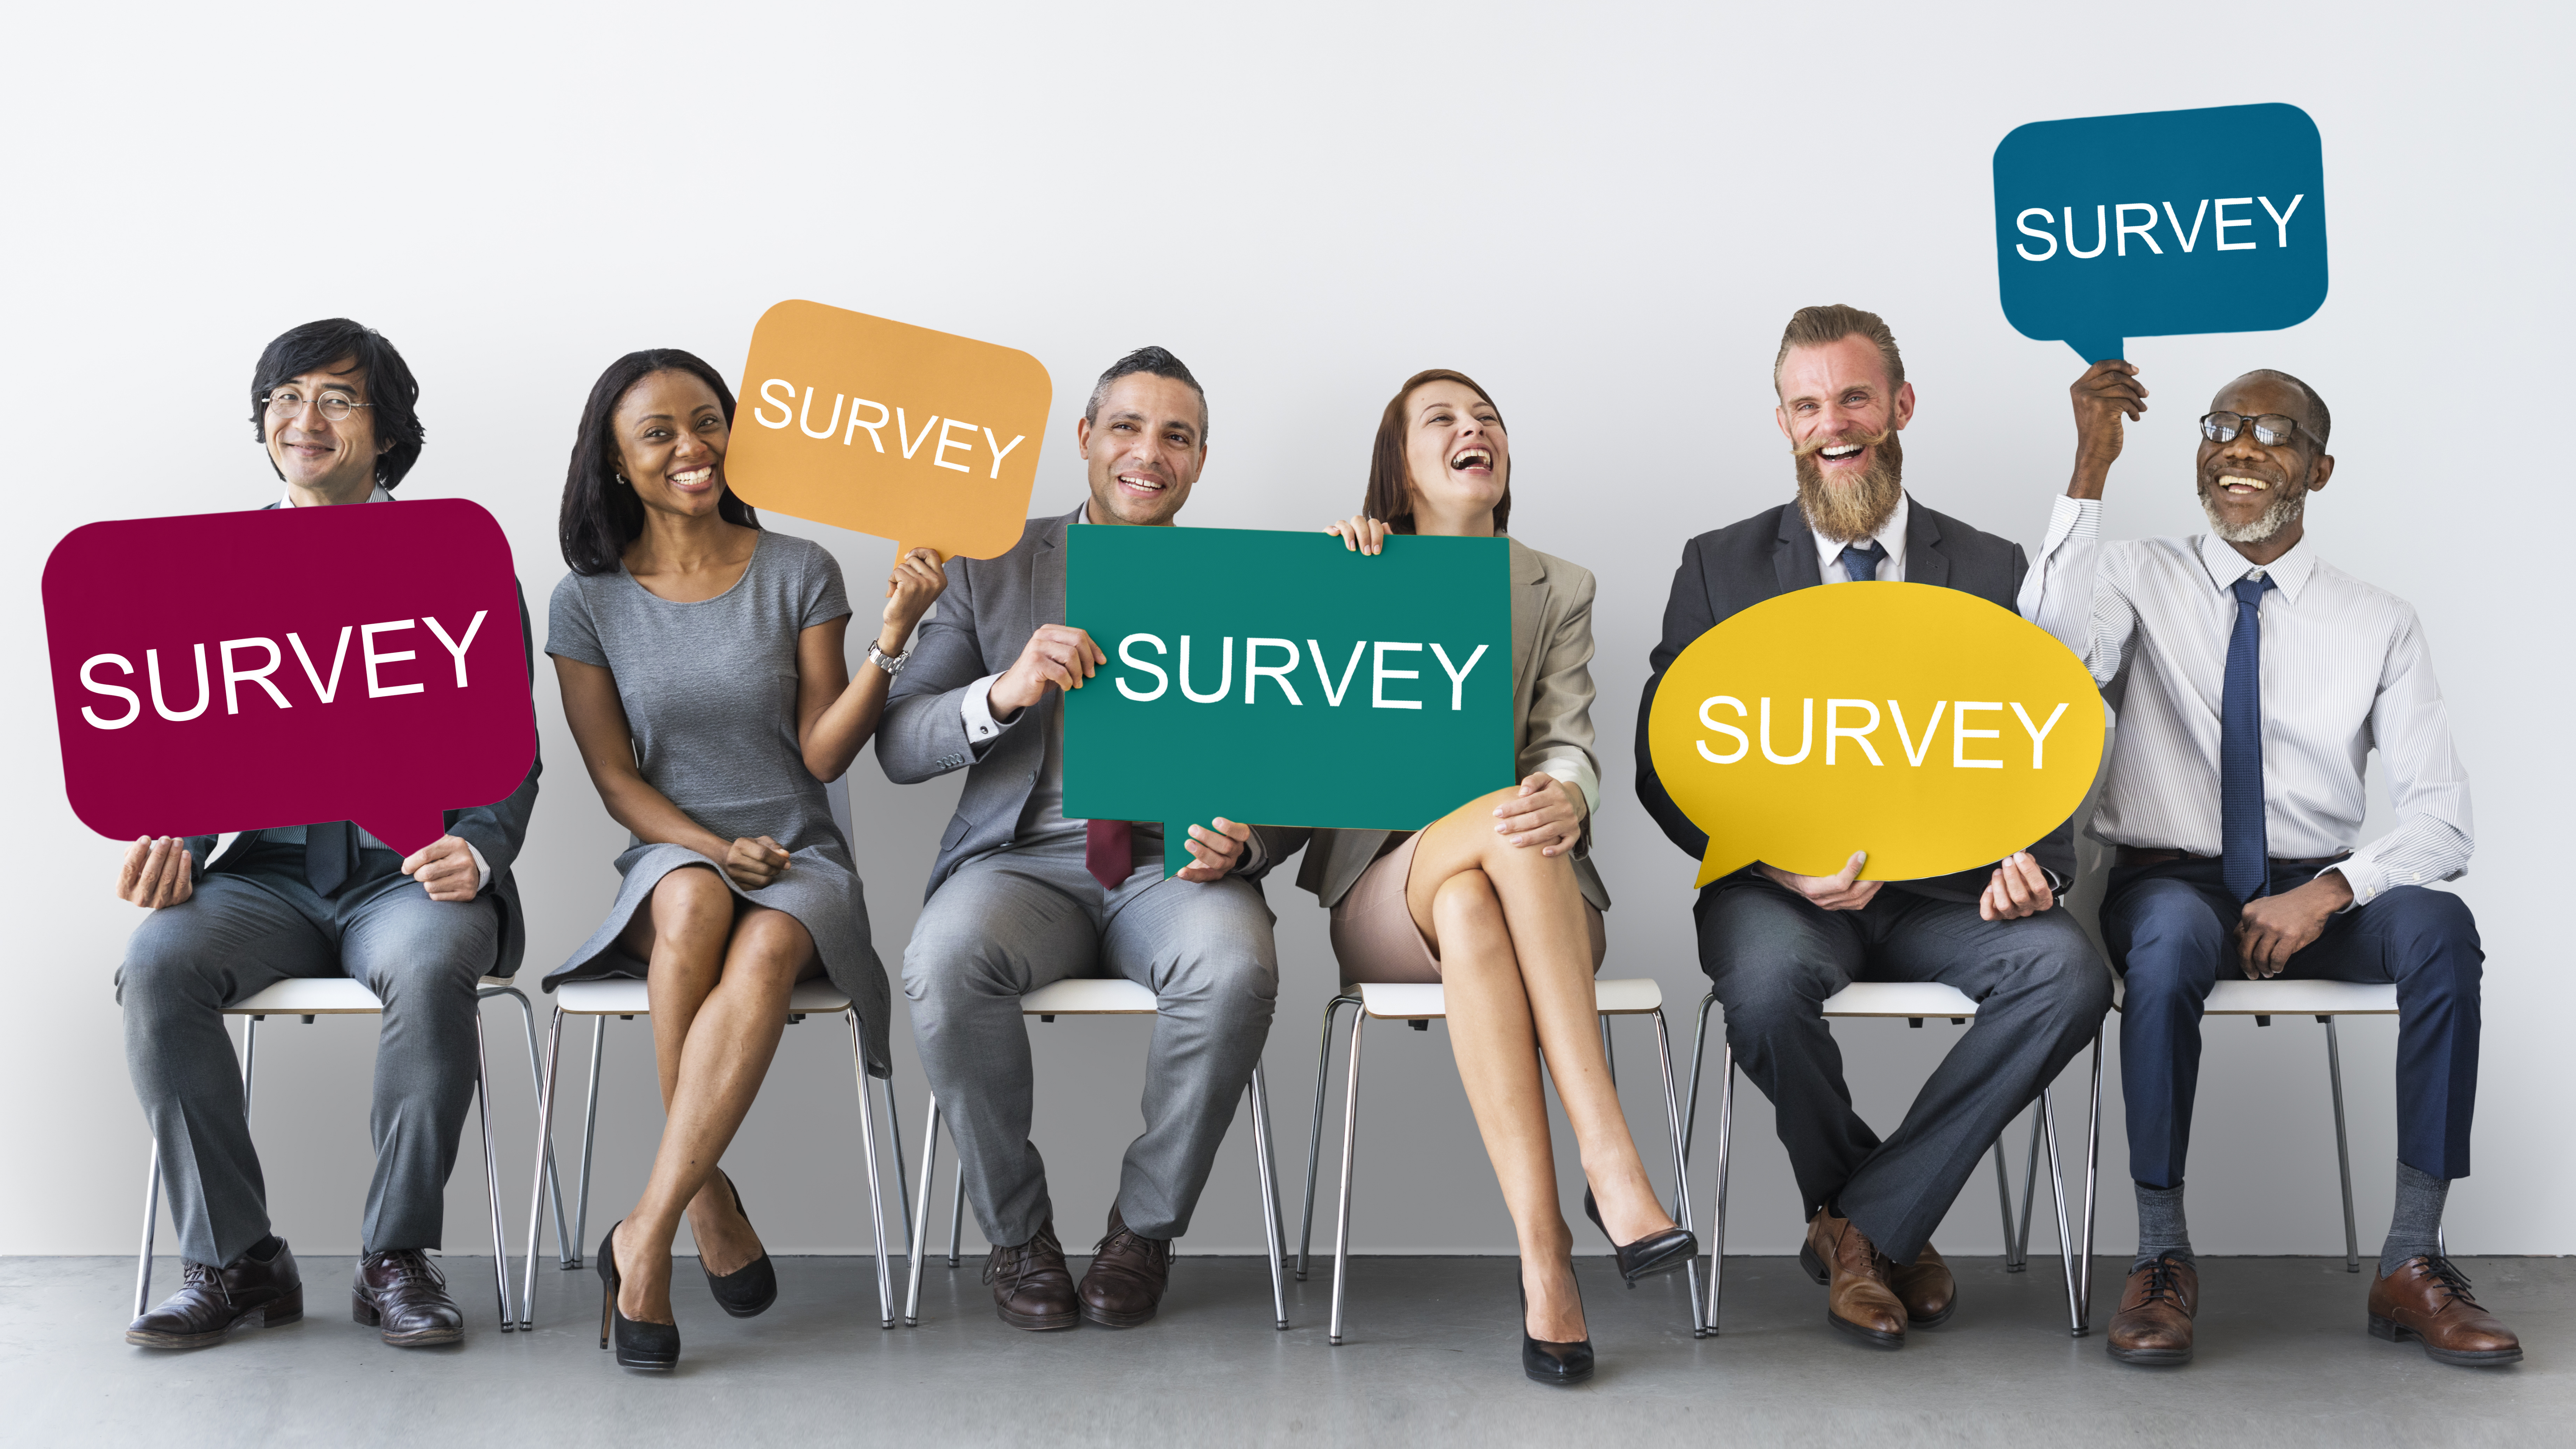 Register by August 1 for the Camber Survey System – Gather Data and Take Meaningful Action